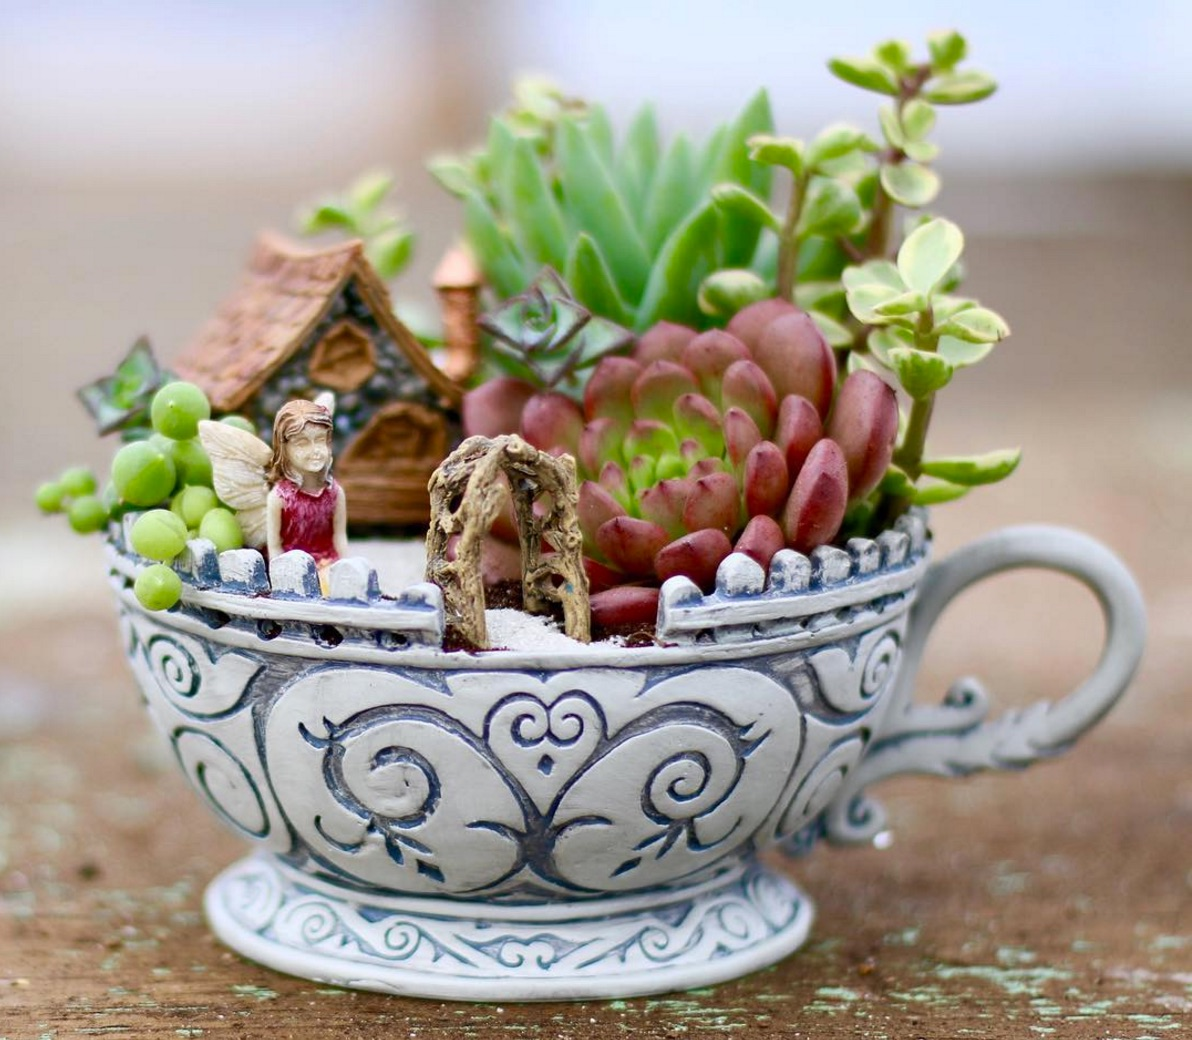 25 indoor succulent diy project ideas page 2 of 4 for How to make an indoor succulent garden